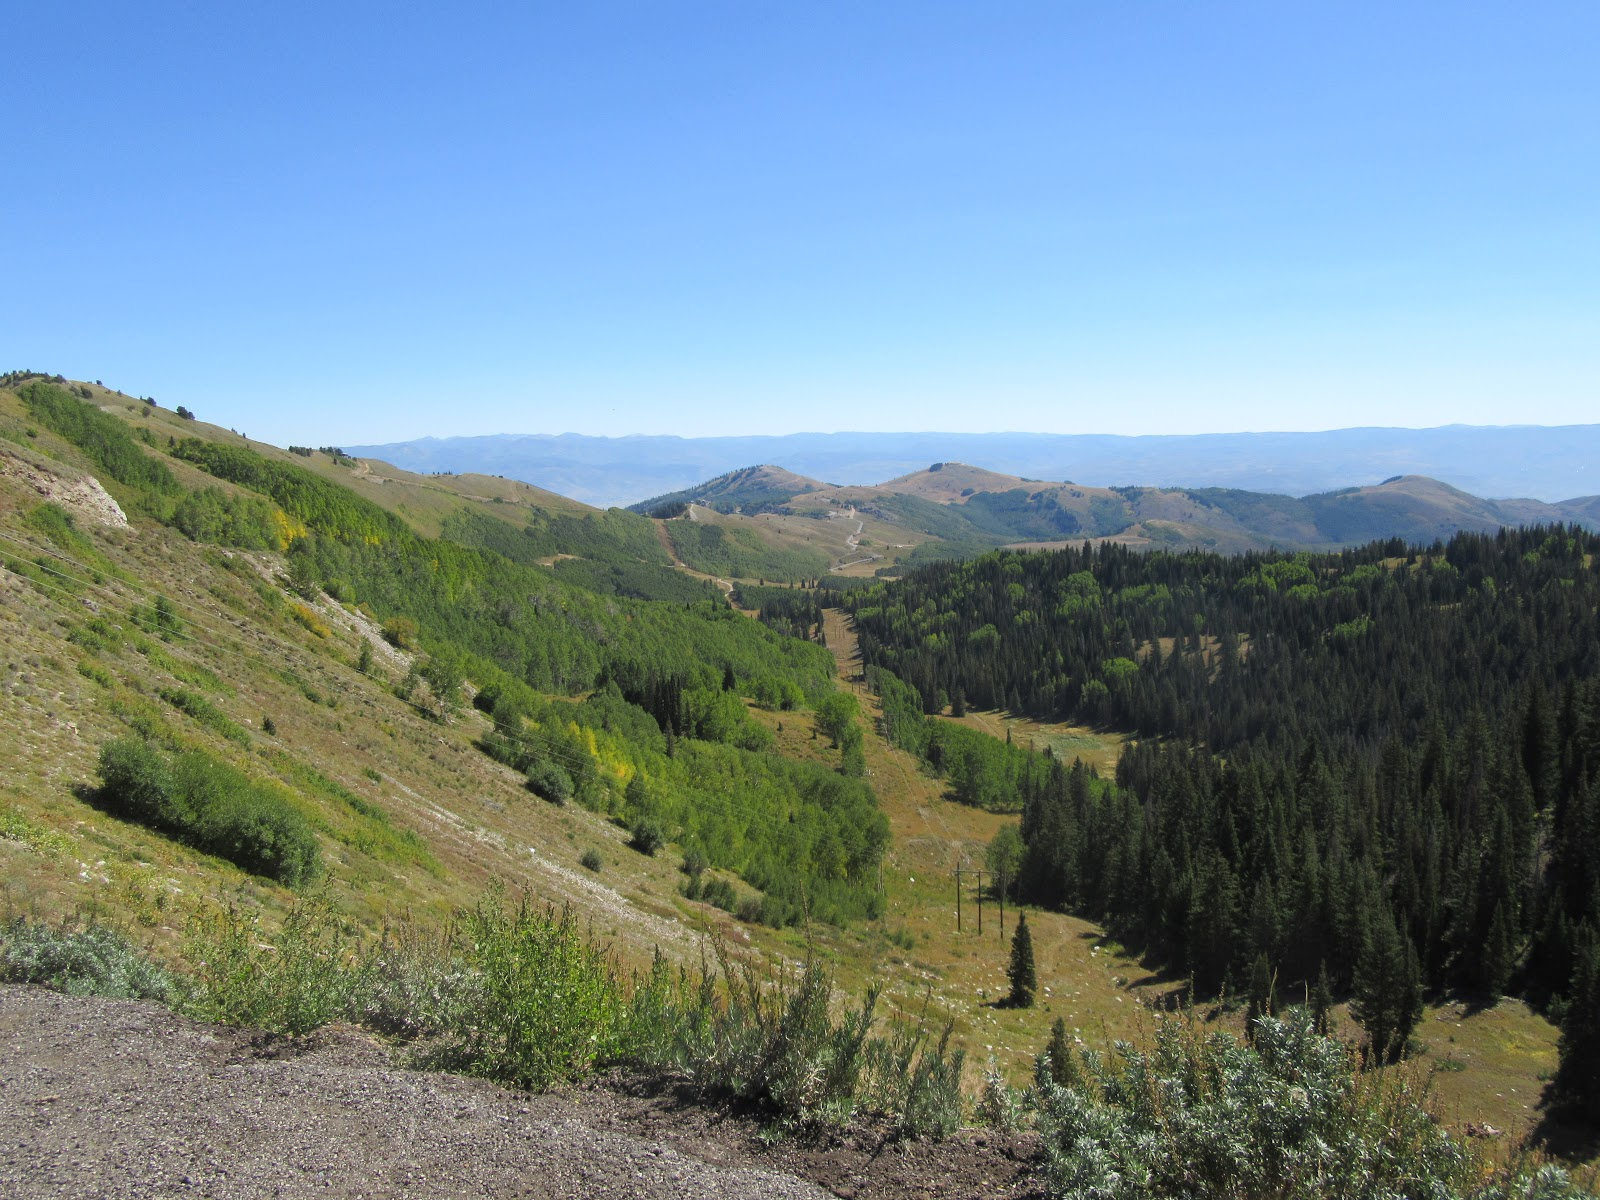 Cycling to top of Big Cottonwood Canyon - Guardsmand Pass - view from the top.